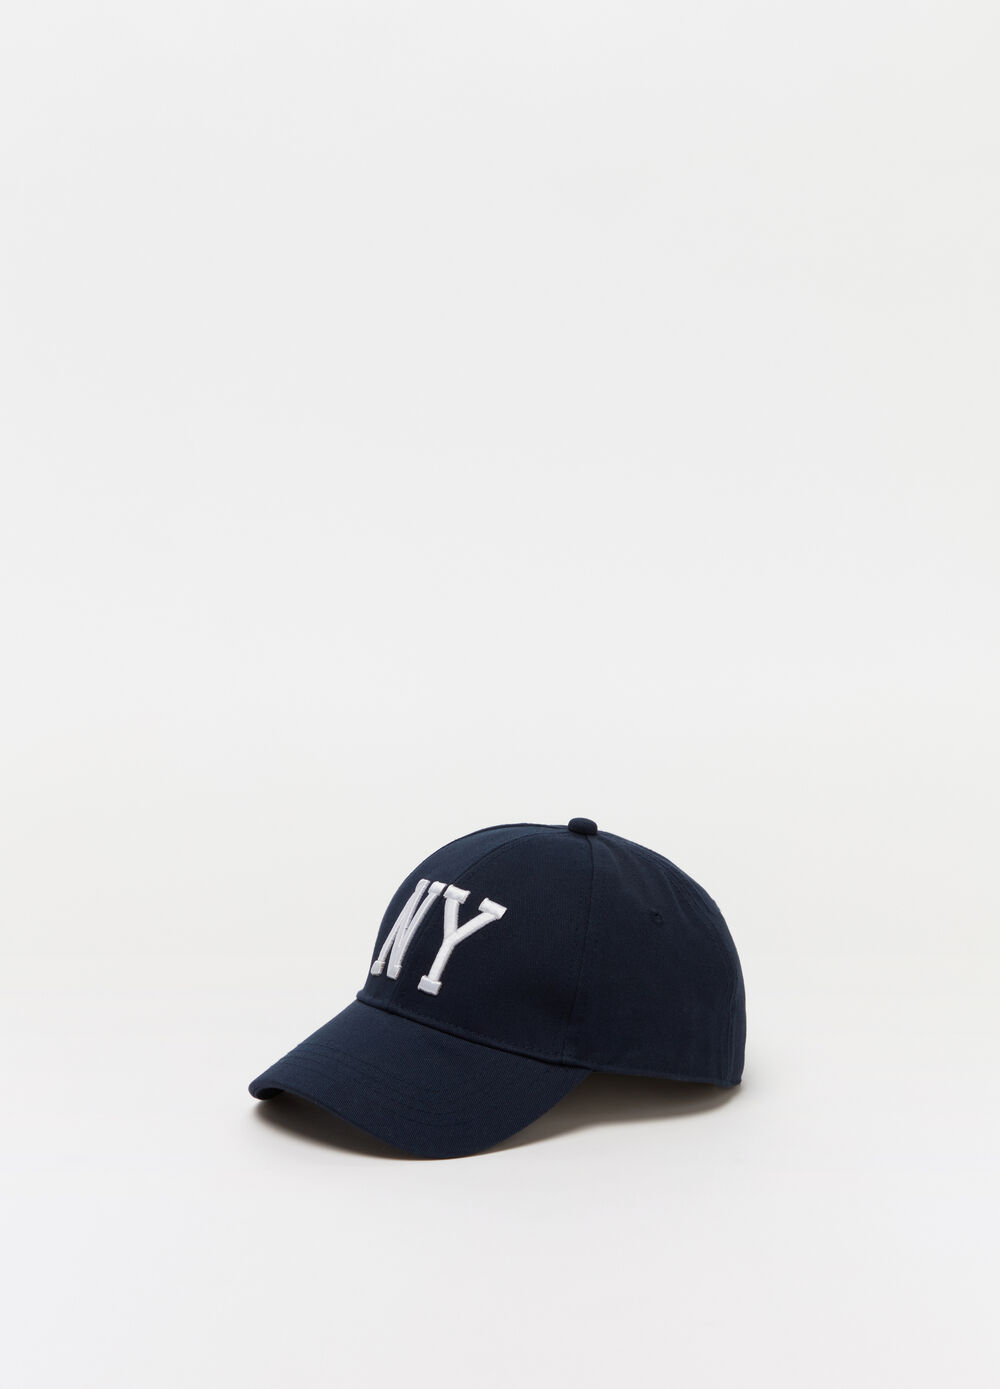 Baseball cap with NY embroidery on the front